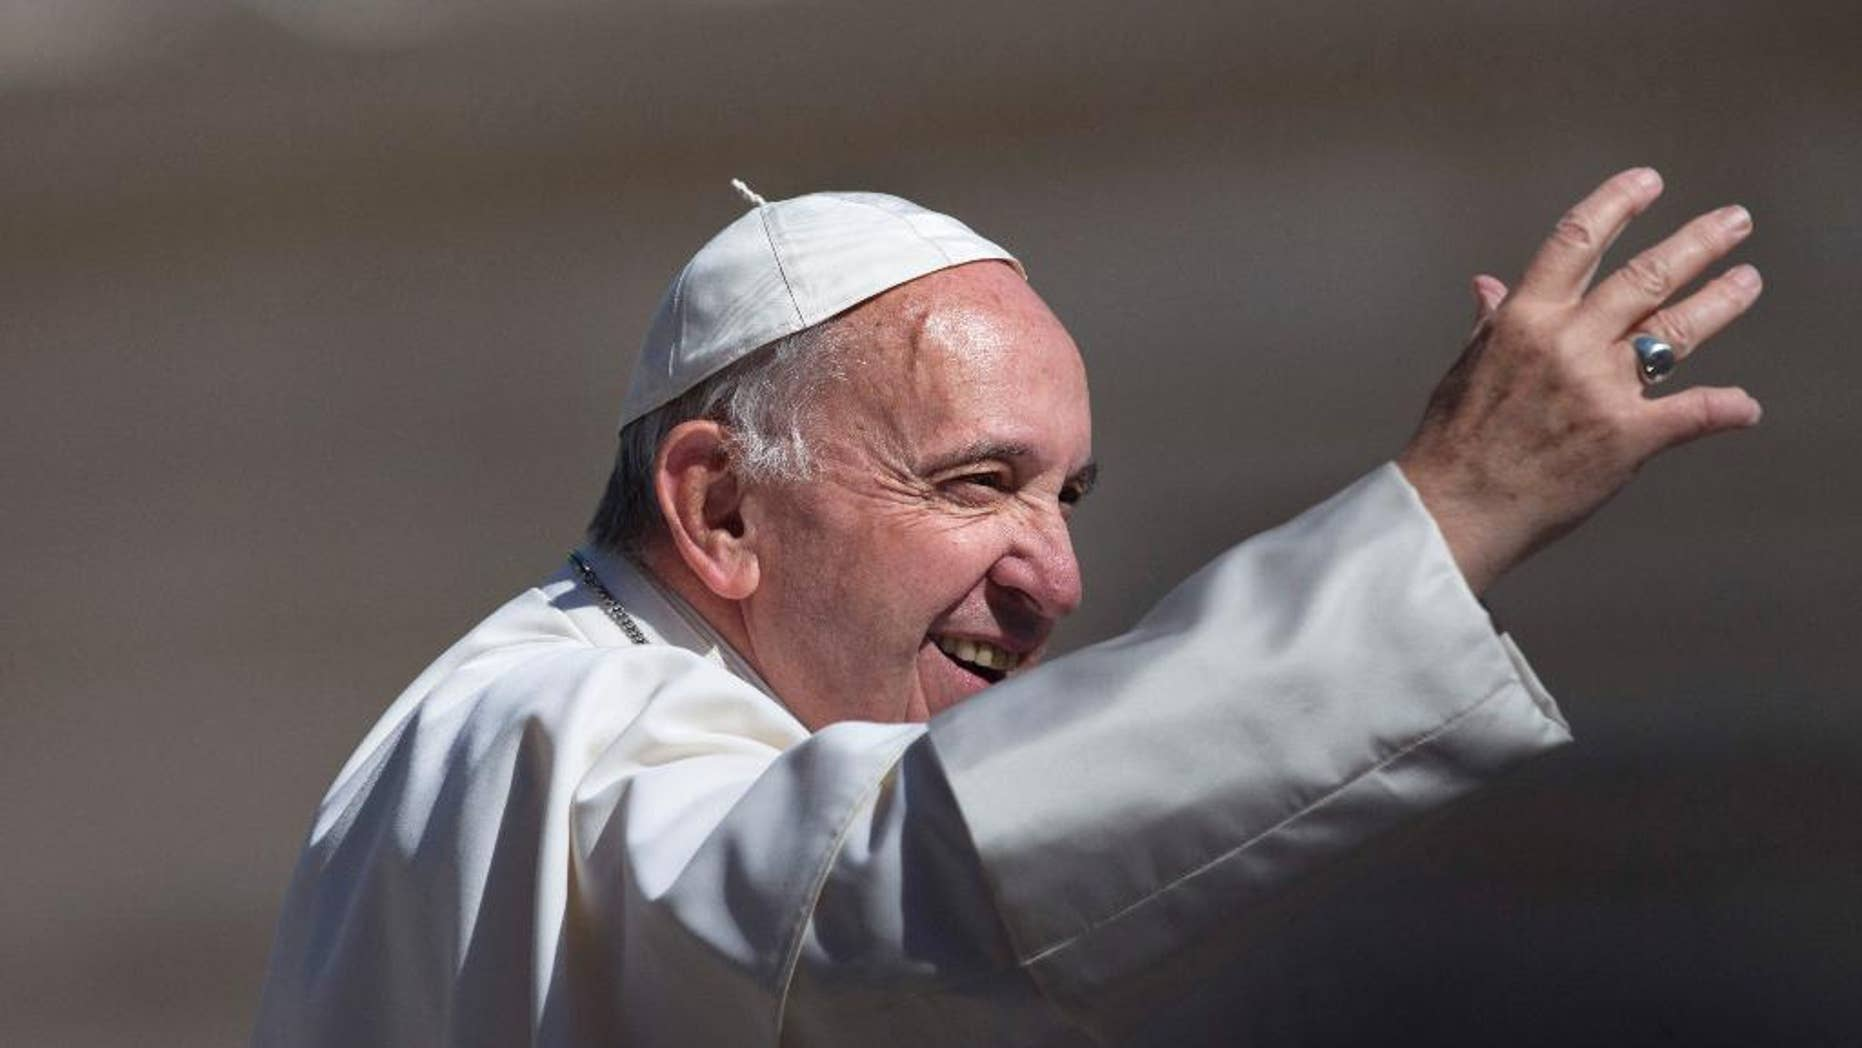 Pope Francis waves to the crowd as he arrives for his weekly general audience in St. Peter's Square at the Vatican, Wednesday, May 18, 2016. (AP Photo/Alessandra Tarantino)